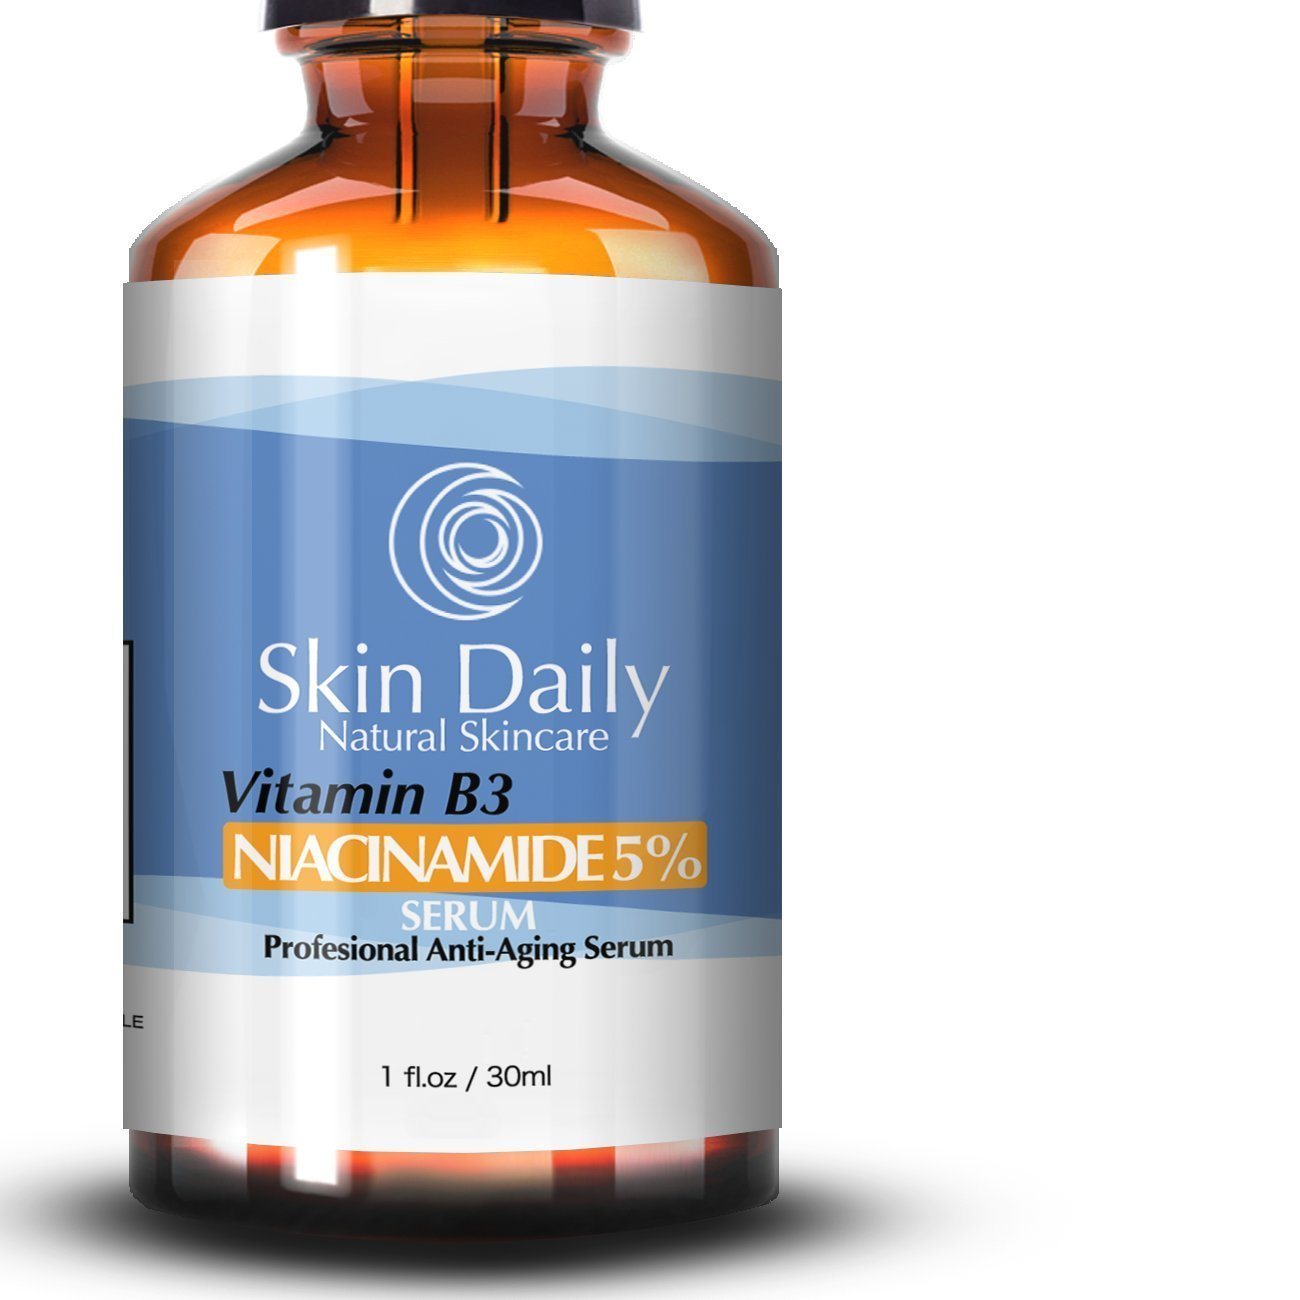 Niacinamide Vitamin B3 Cream Serum 5%- 1 Oz - Visibly Tightens Pores, Reduces Wrinkles, Boosts Collagen, an Superior Moisturizing to Promote Visibly Younger Skin - Your Friends Will Notice Skin Daily Skincare Solutions